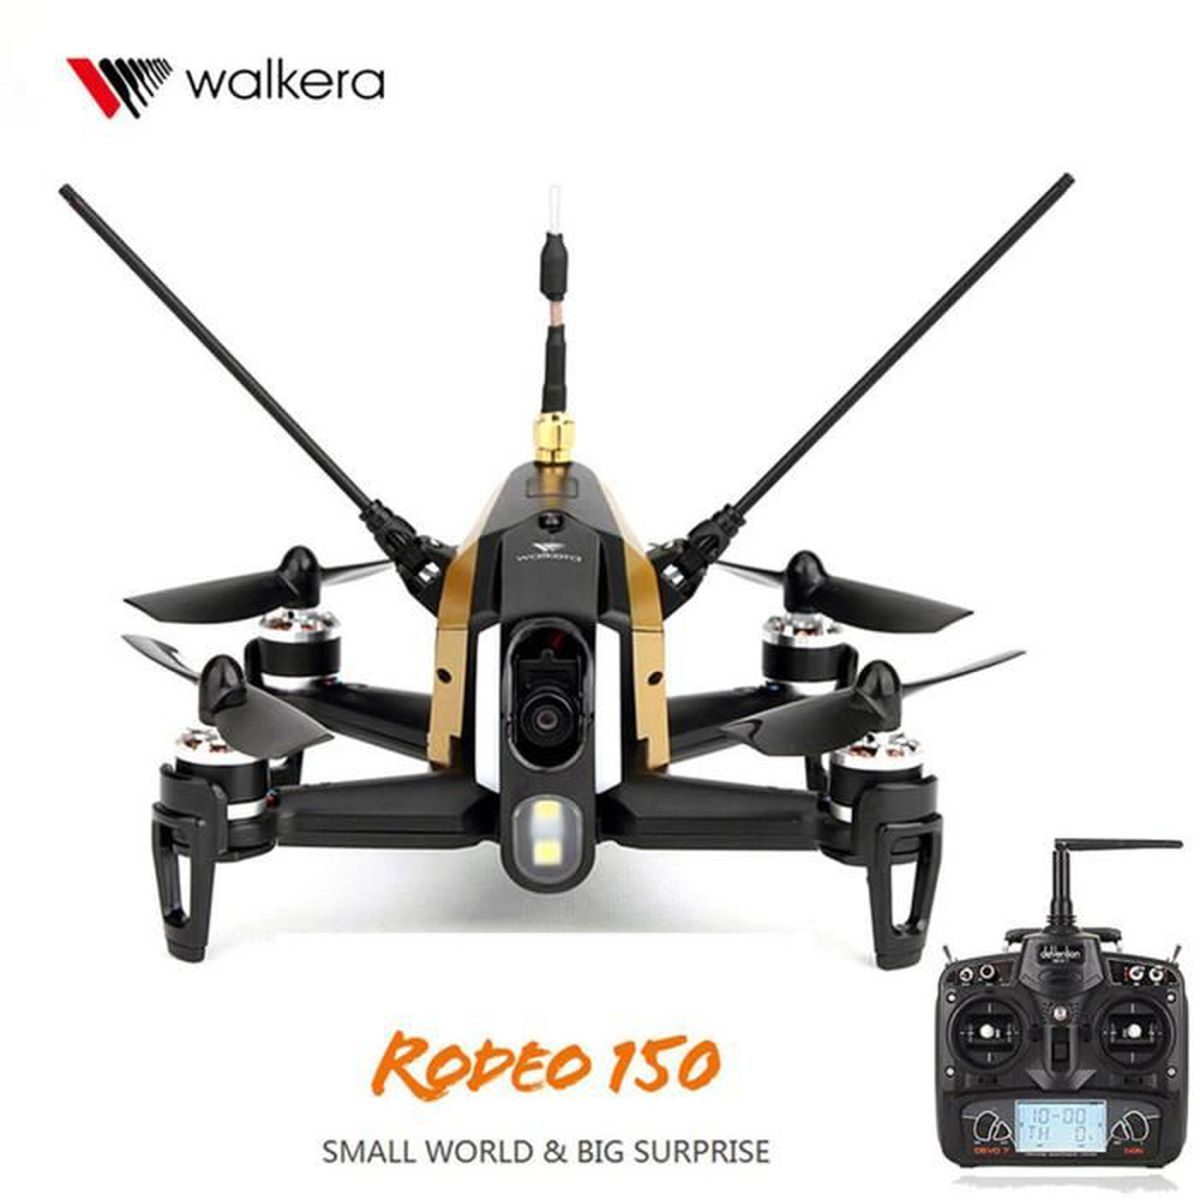 walkera rodeo 150 rc drone de course avec devo 7 600tvl cam ra rtf noir achat vente drone. Black Bedroom Furniture Sets. Home Design Ideas